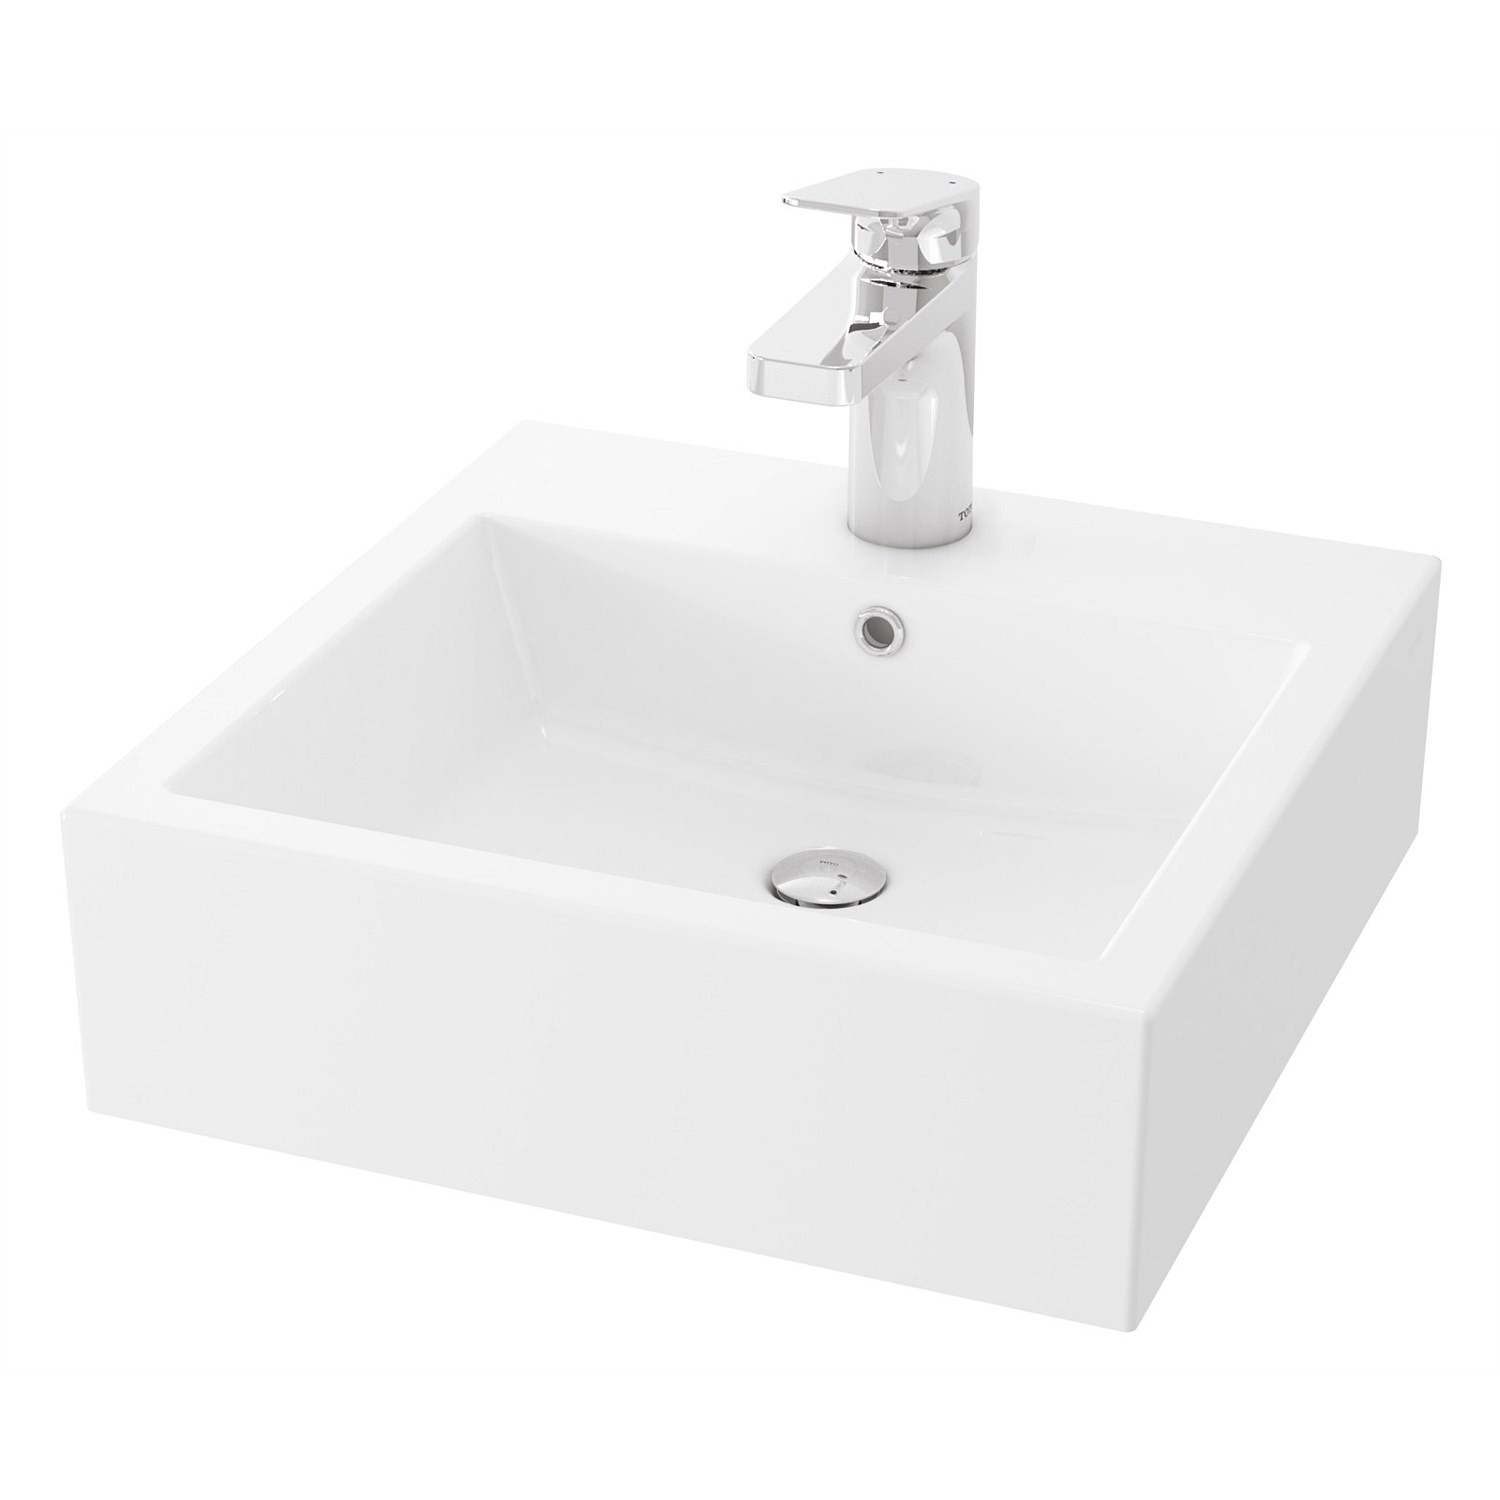 Basins | Plumbing World - Toto Valdes 505mm Square Counter Top Basin